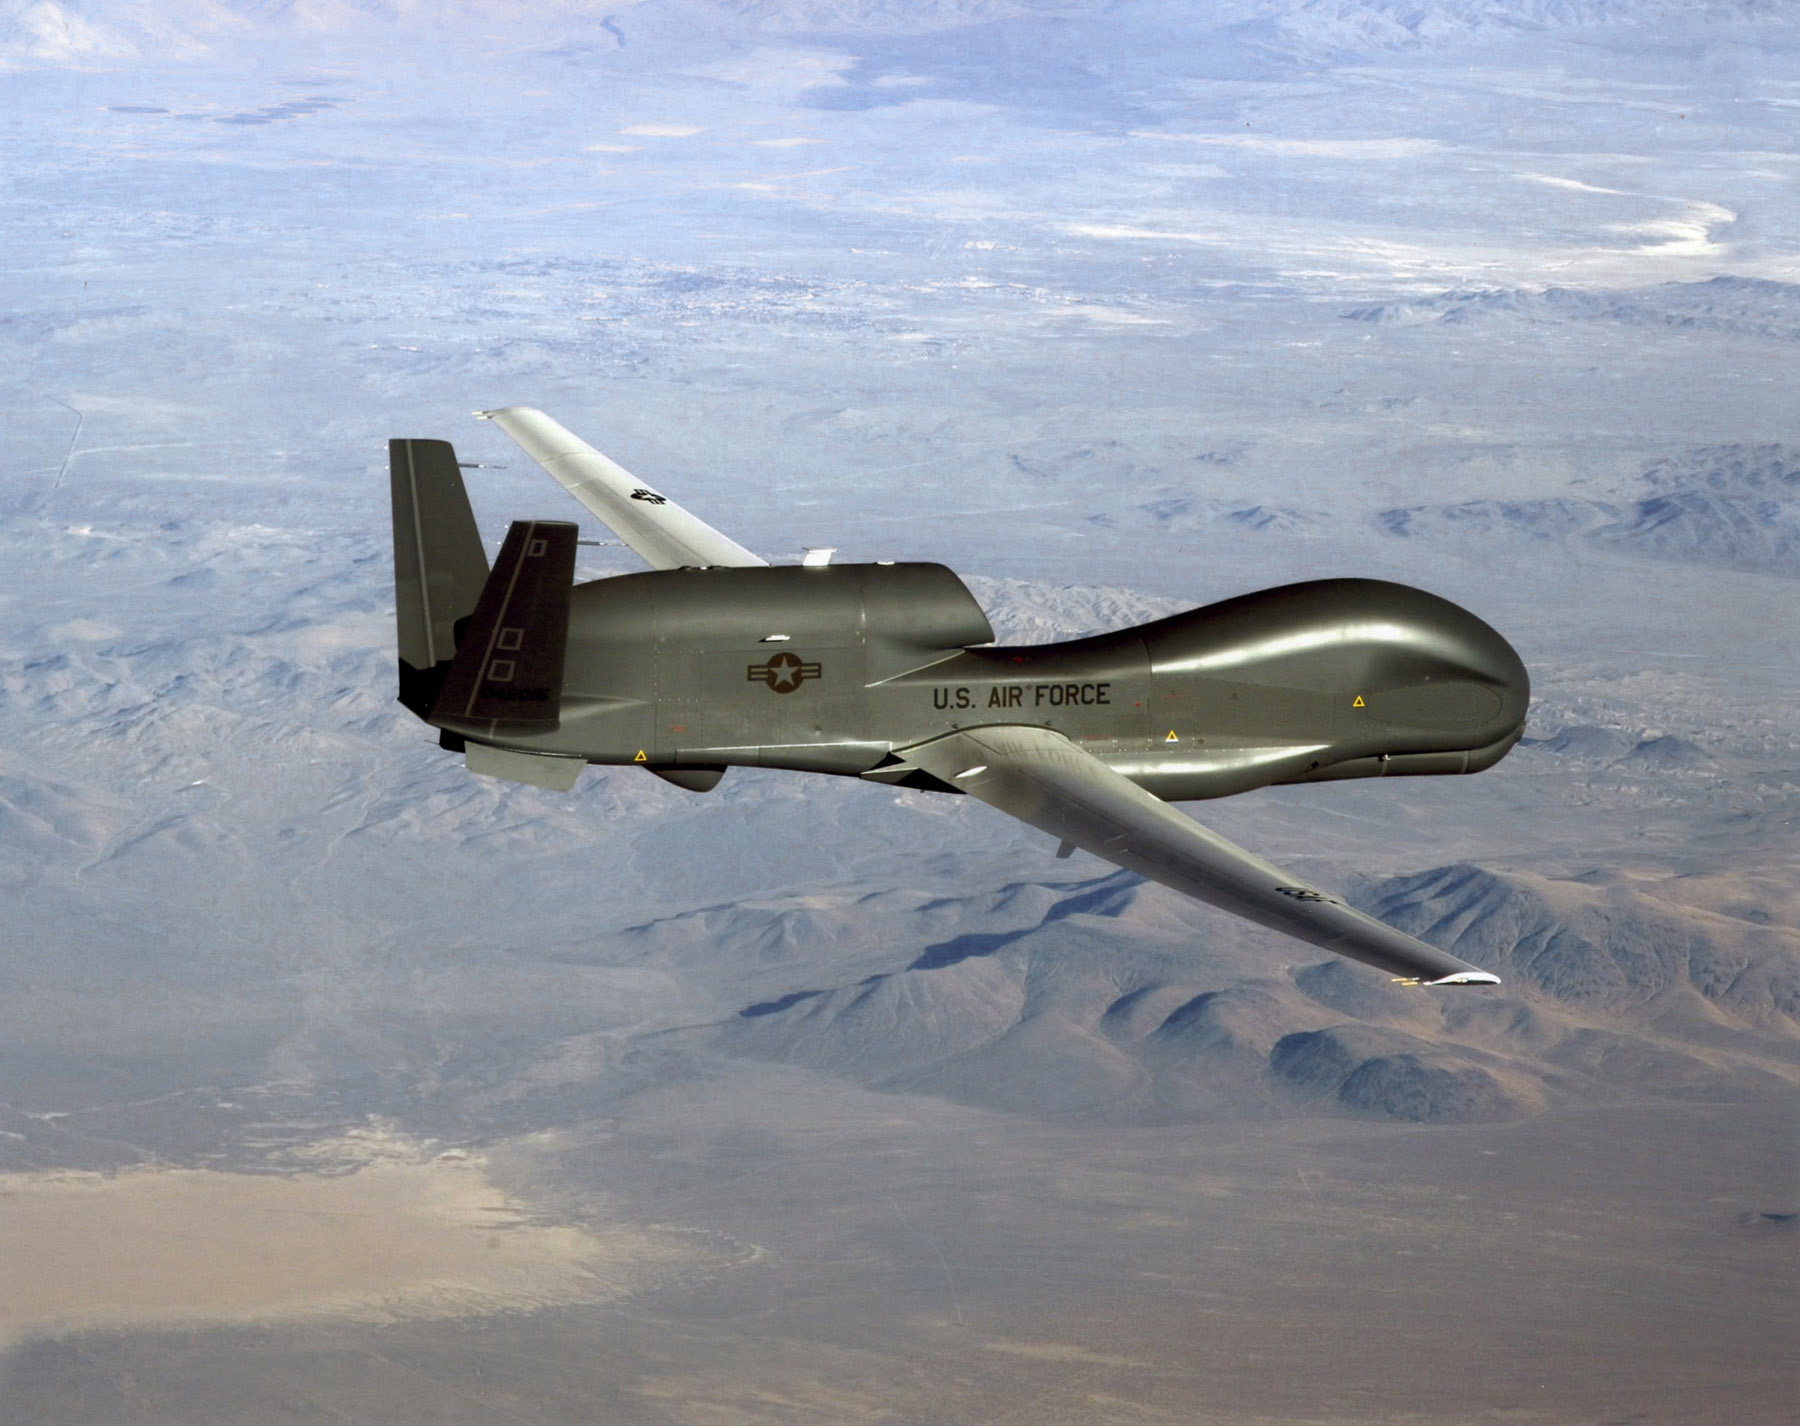 File photo of a RQ-4 Global Hawk unmanned surveillance and reconnaissance aircraft.